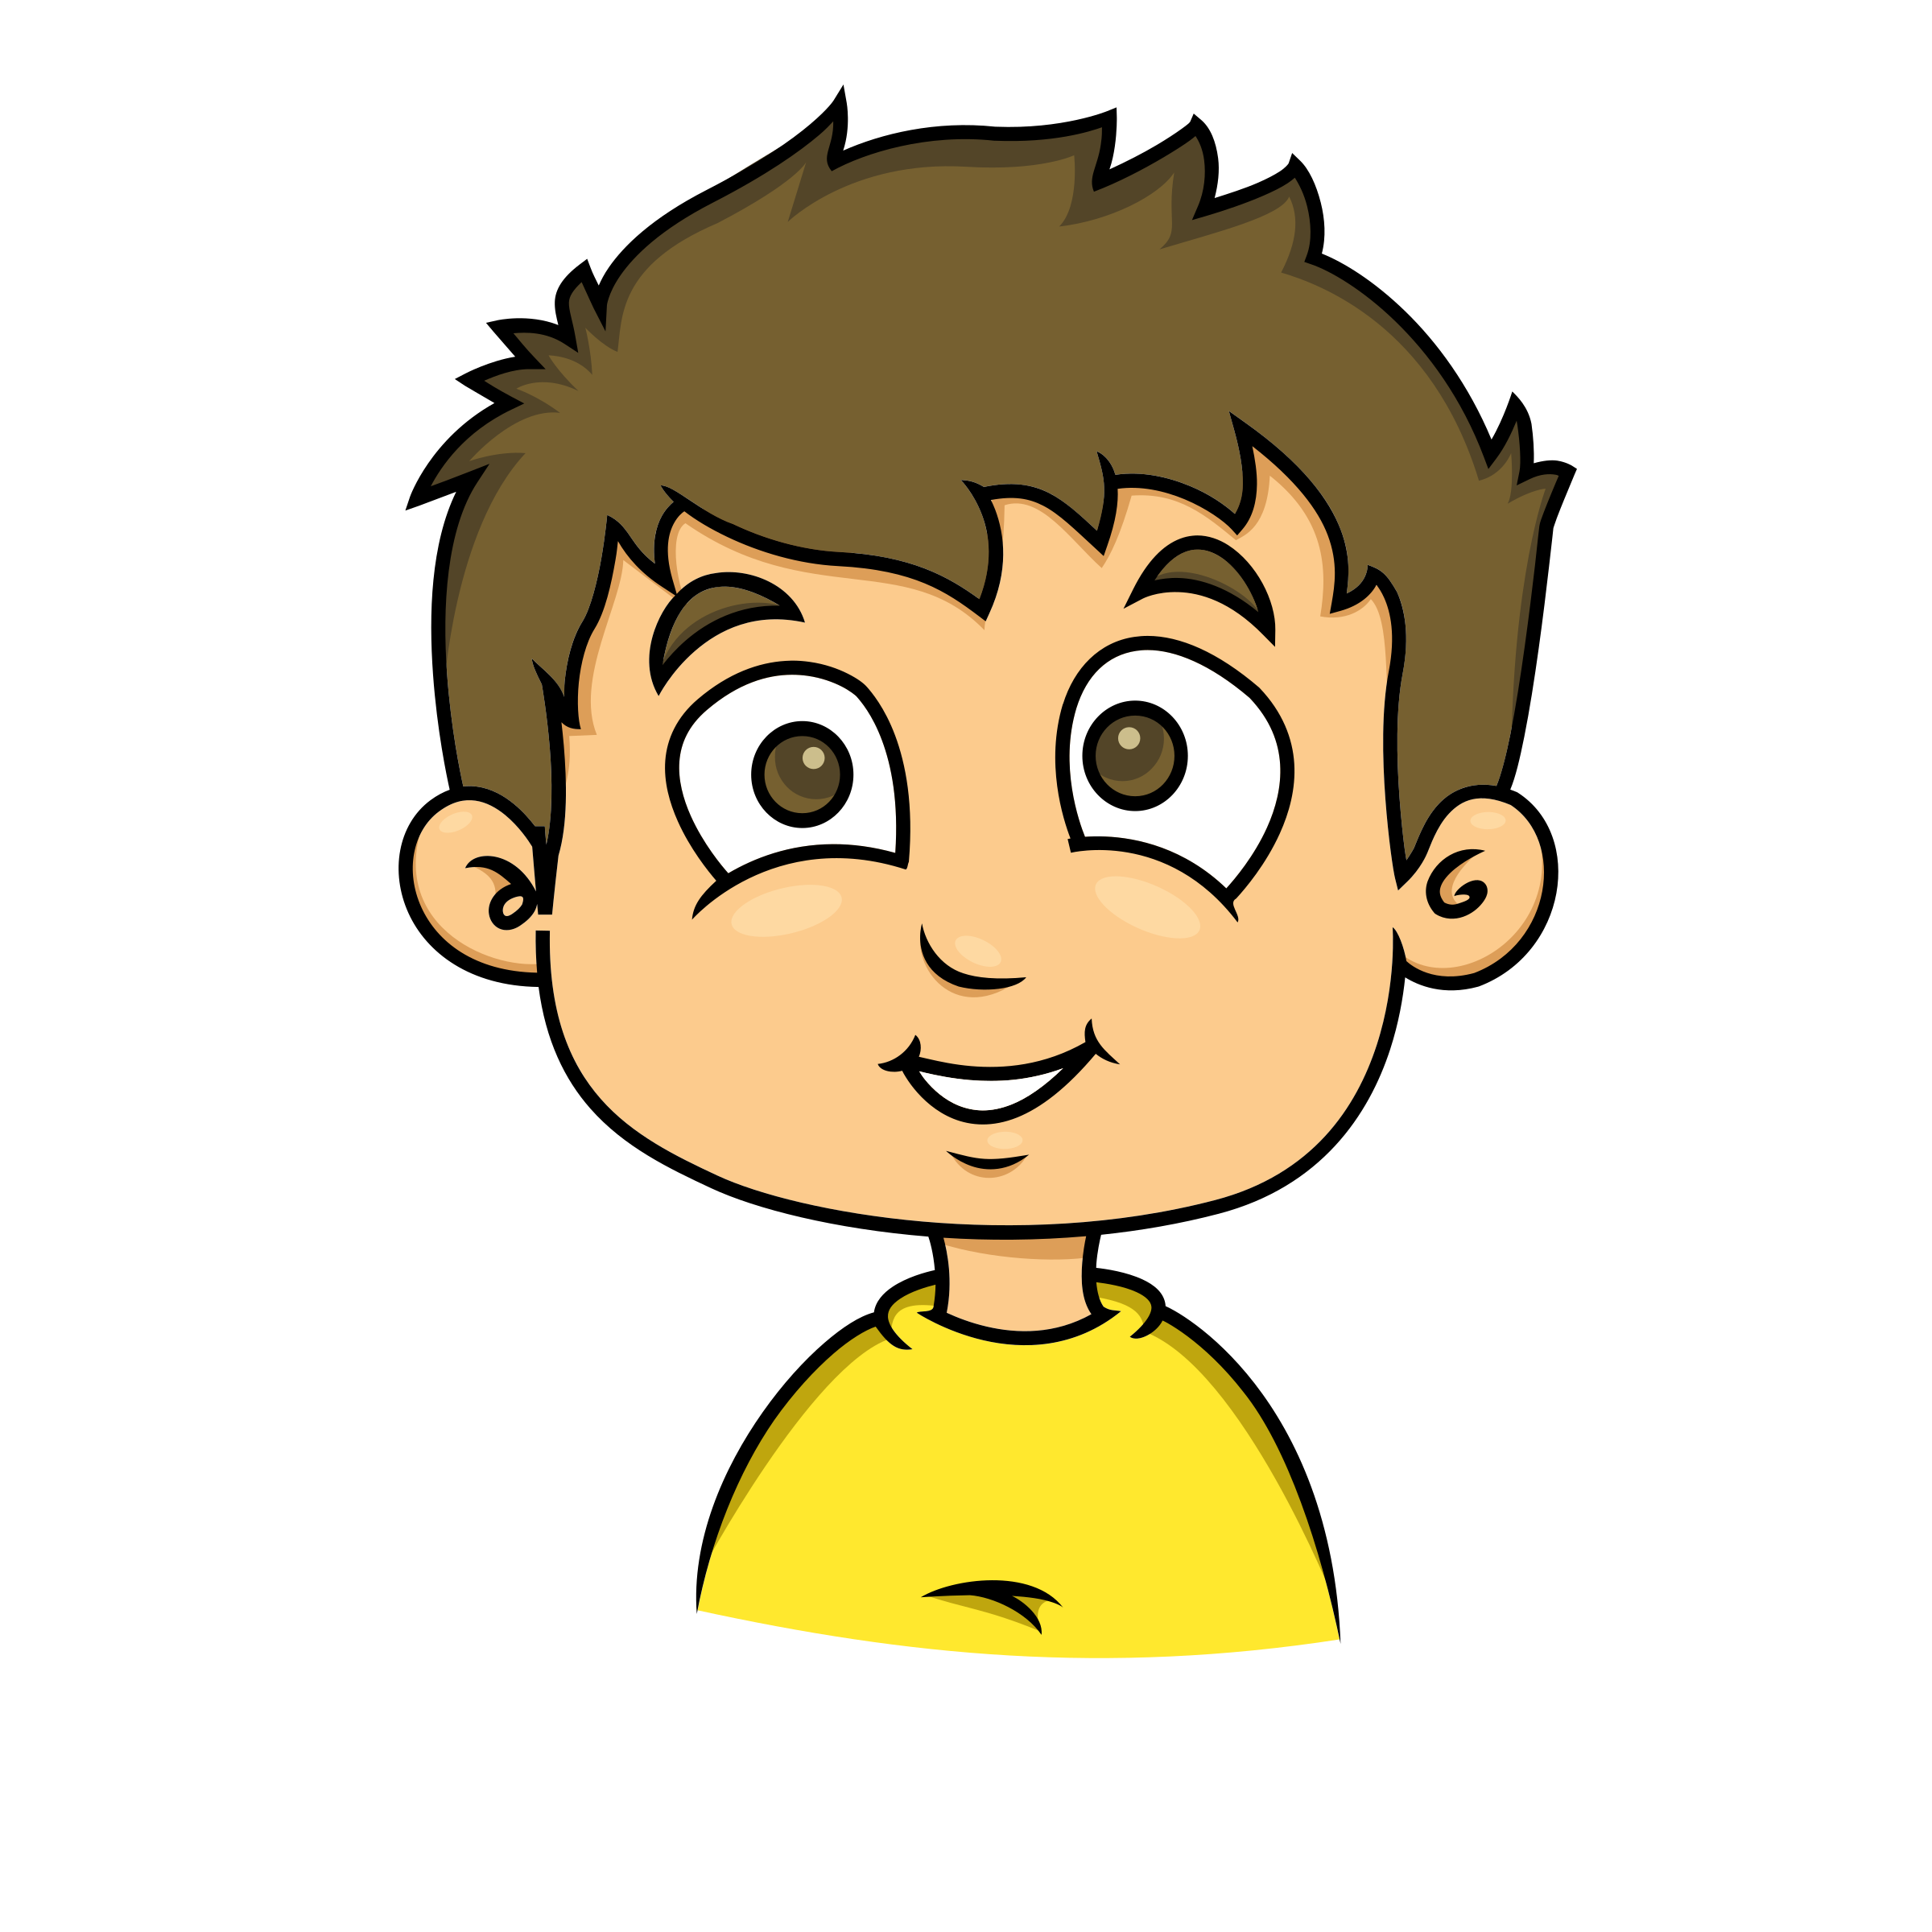 2400x2400 Child clipart happy face